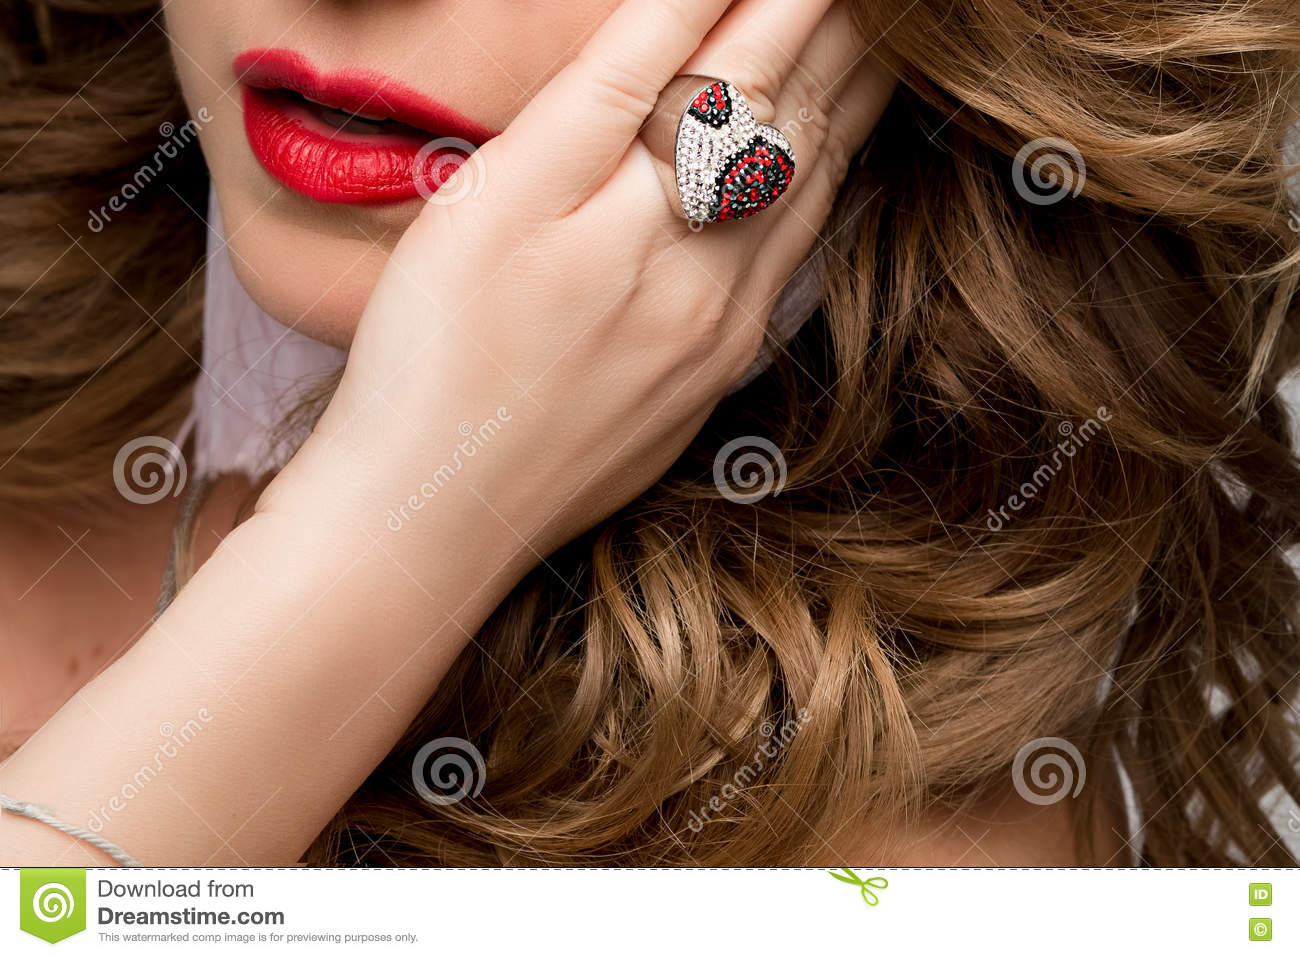 A large portrait of a woman s lips and the hand with the ring. Ring with precious stones, silver and red. Face, red lips